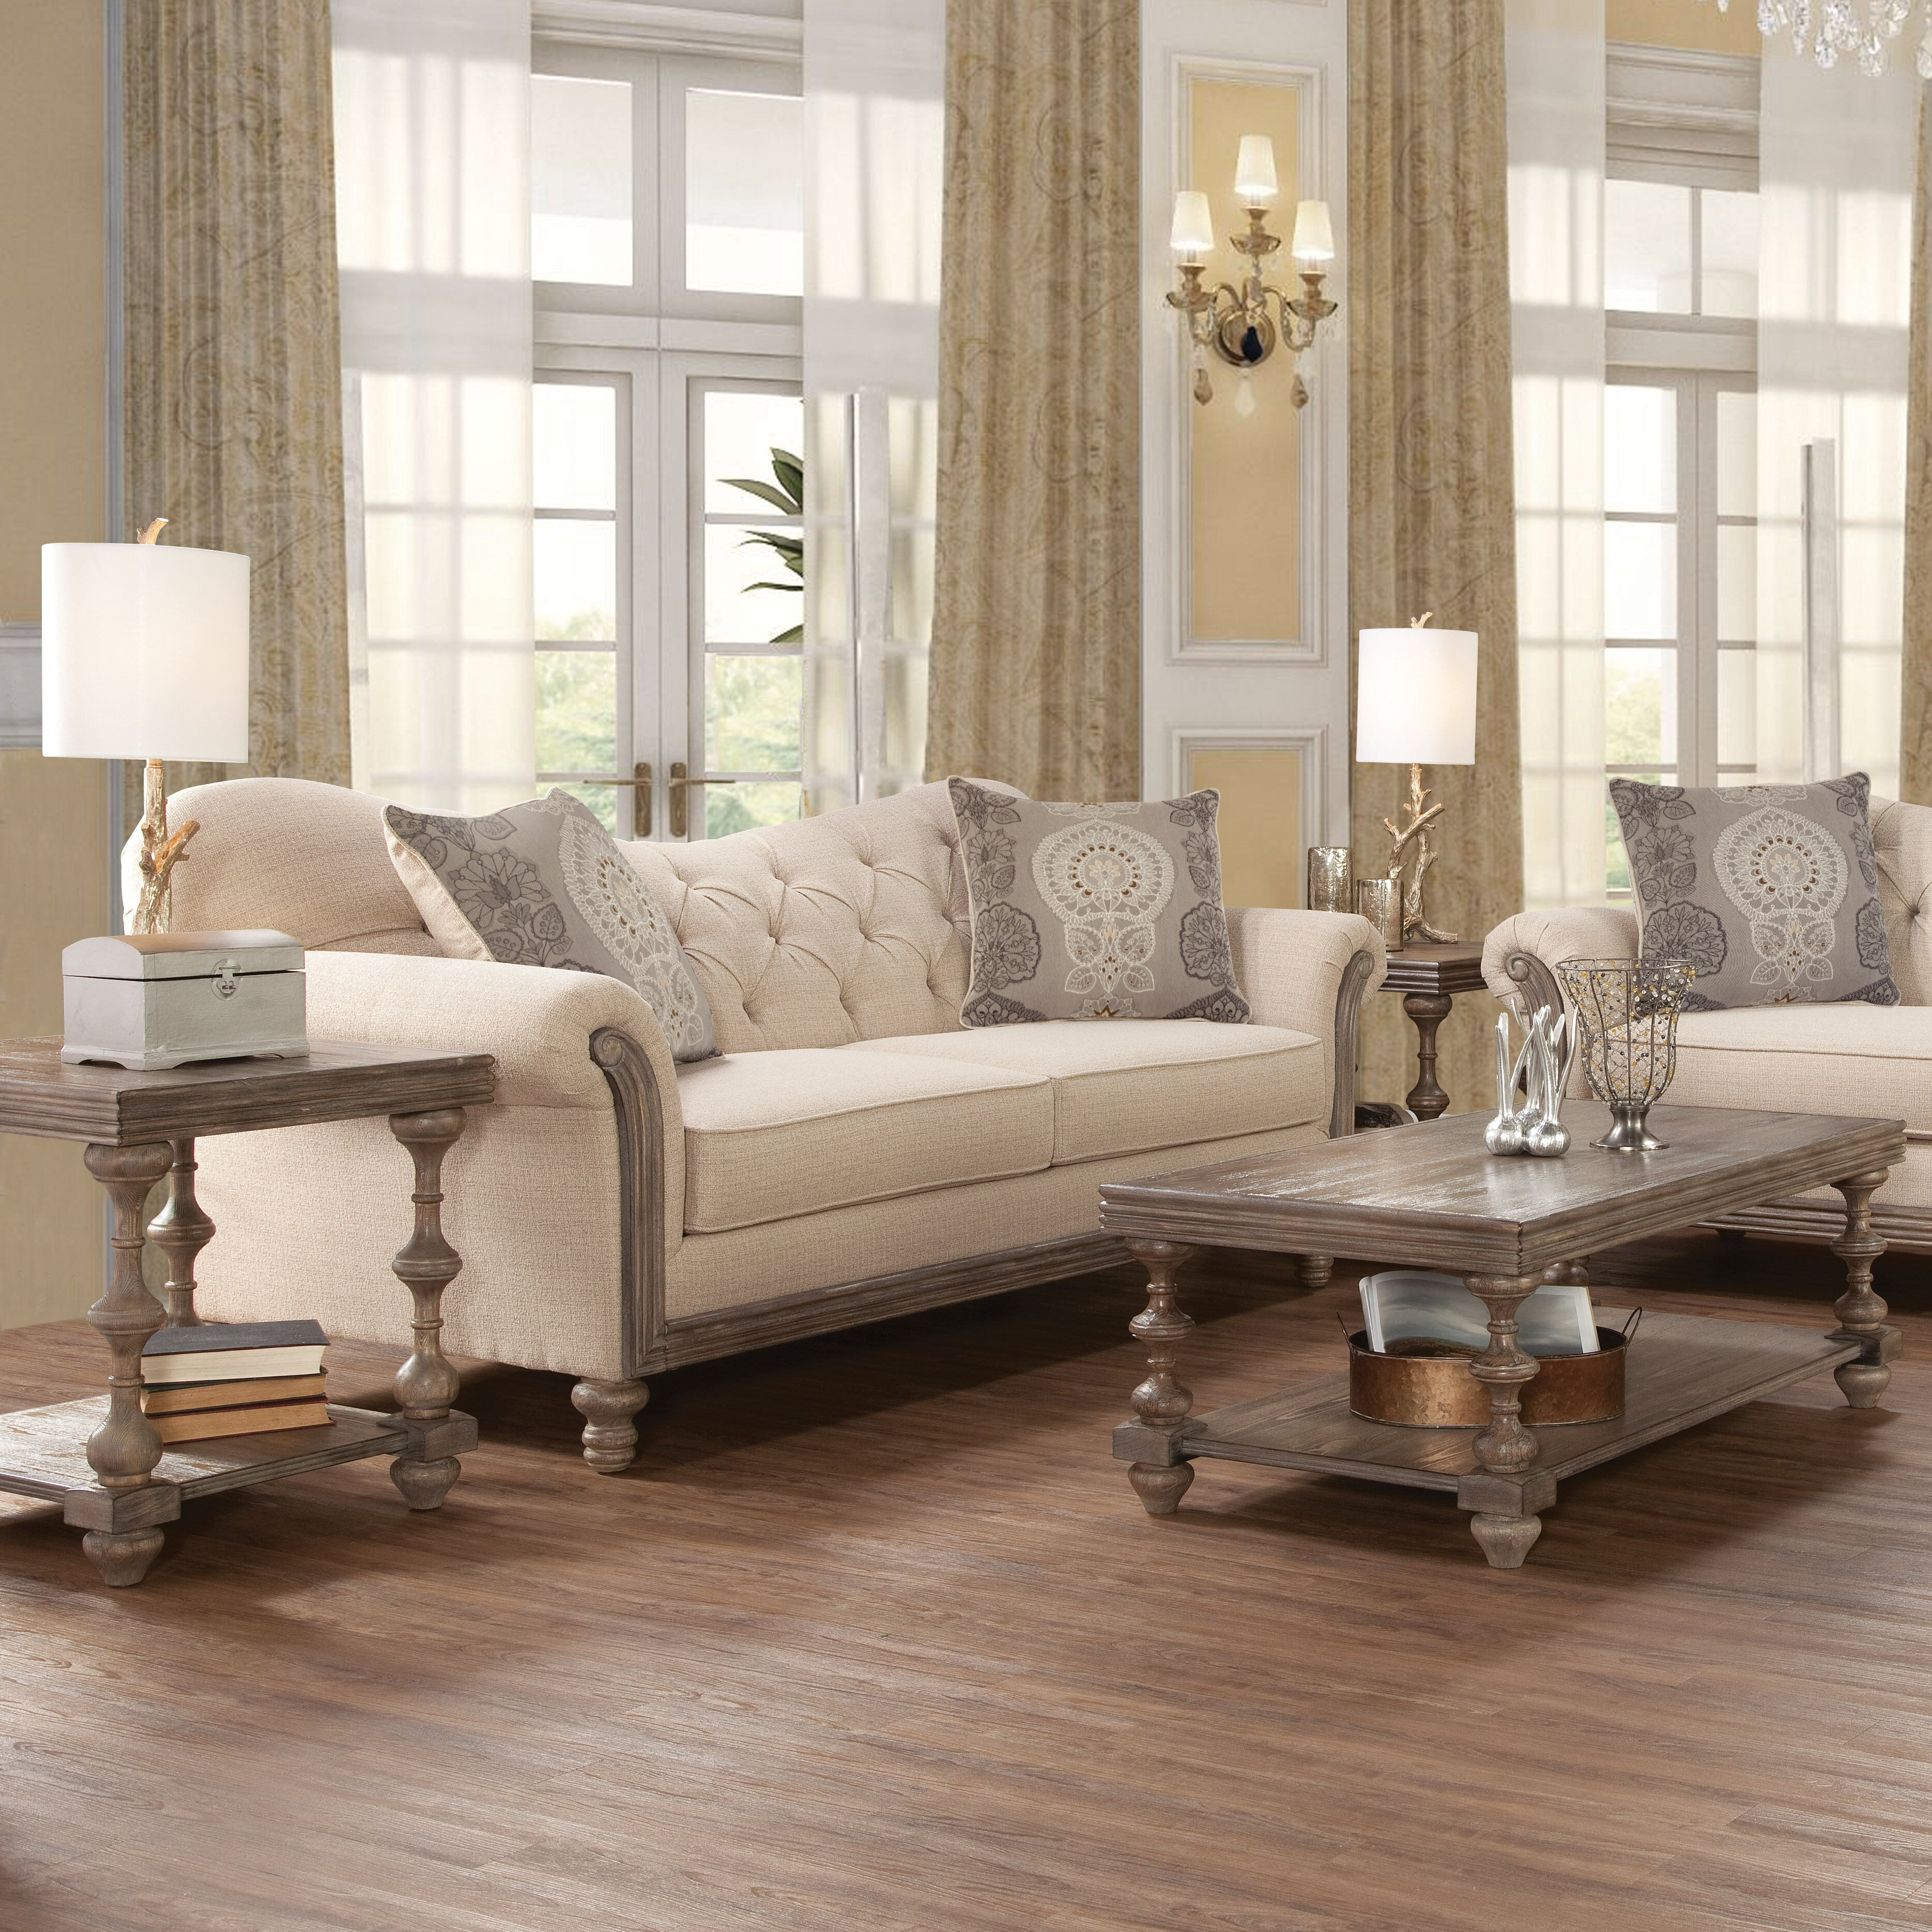 Bungalow Rose Roosa Living Room Collection Reviews: Bungalow Rose Serta Upholstery Vox 3 Piece Coffee Table